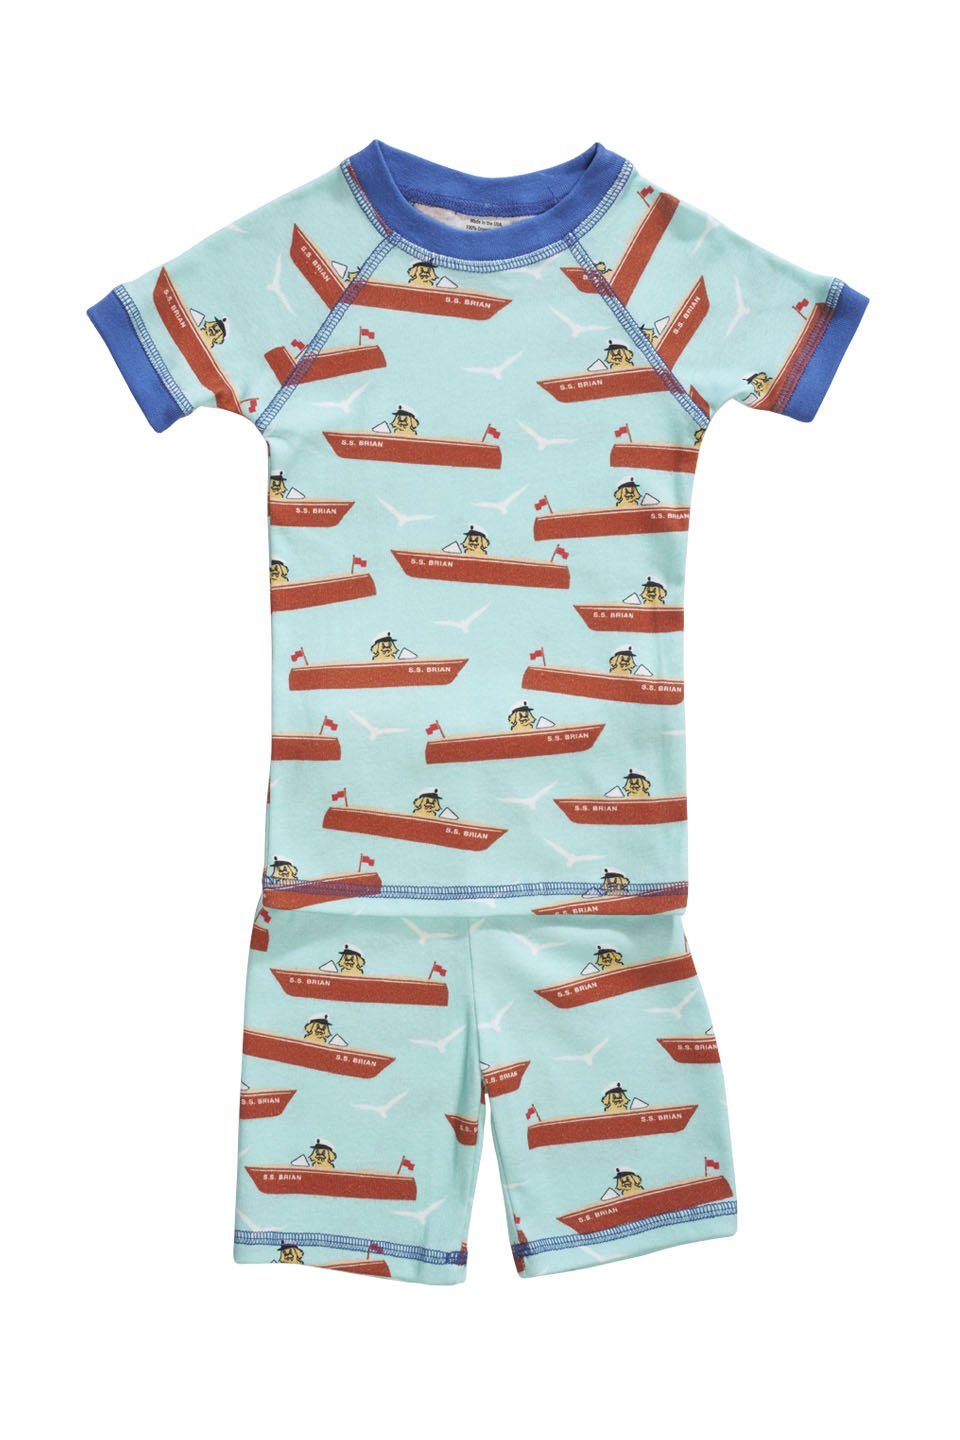 Organic cotton pajamas made in the USA with boats